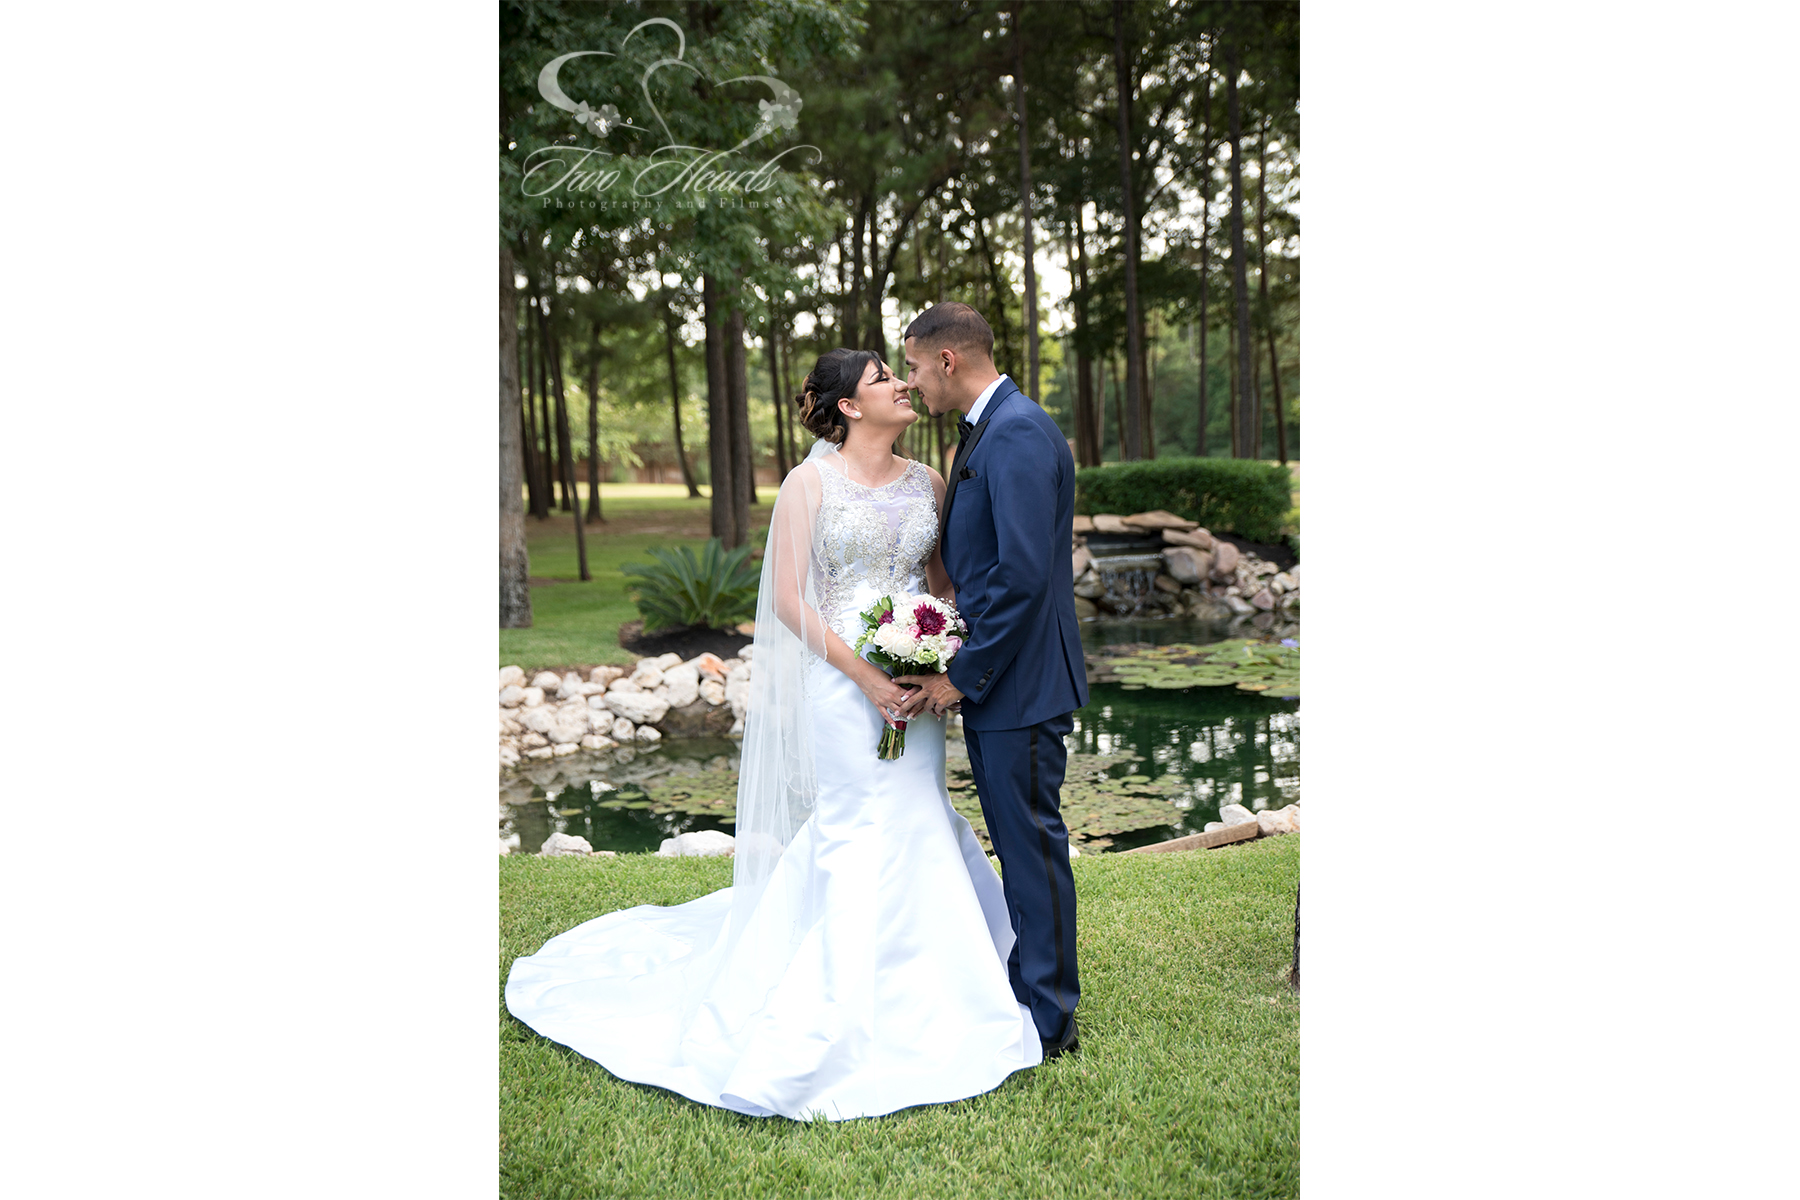 Wedding photography houston prices Cached